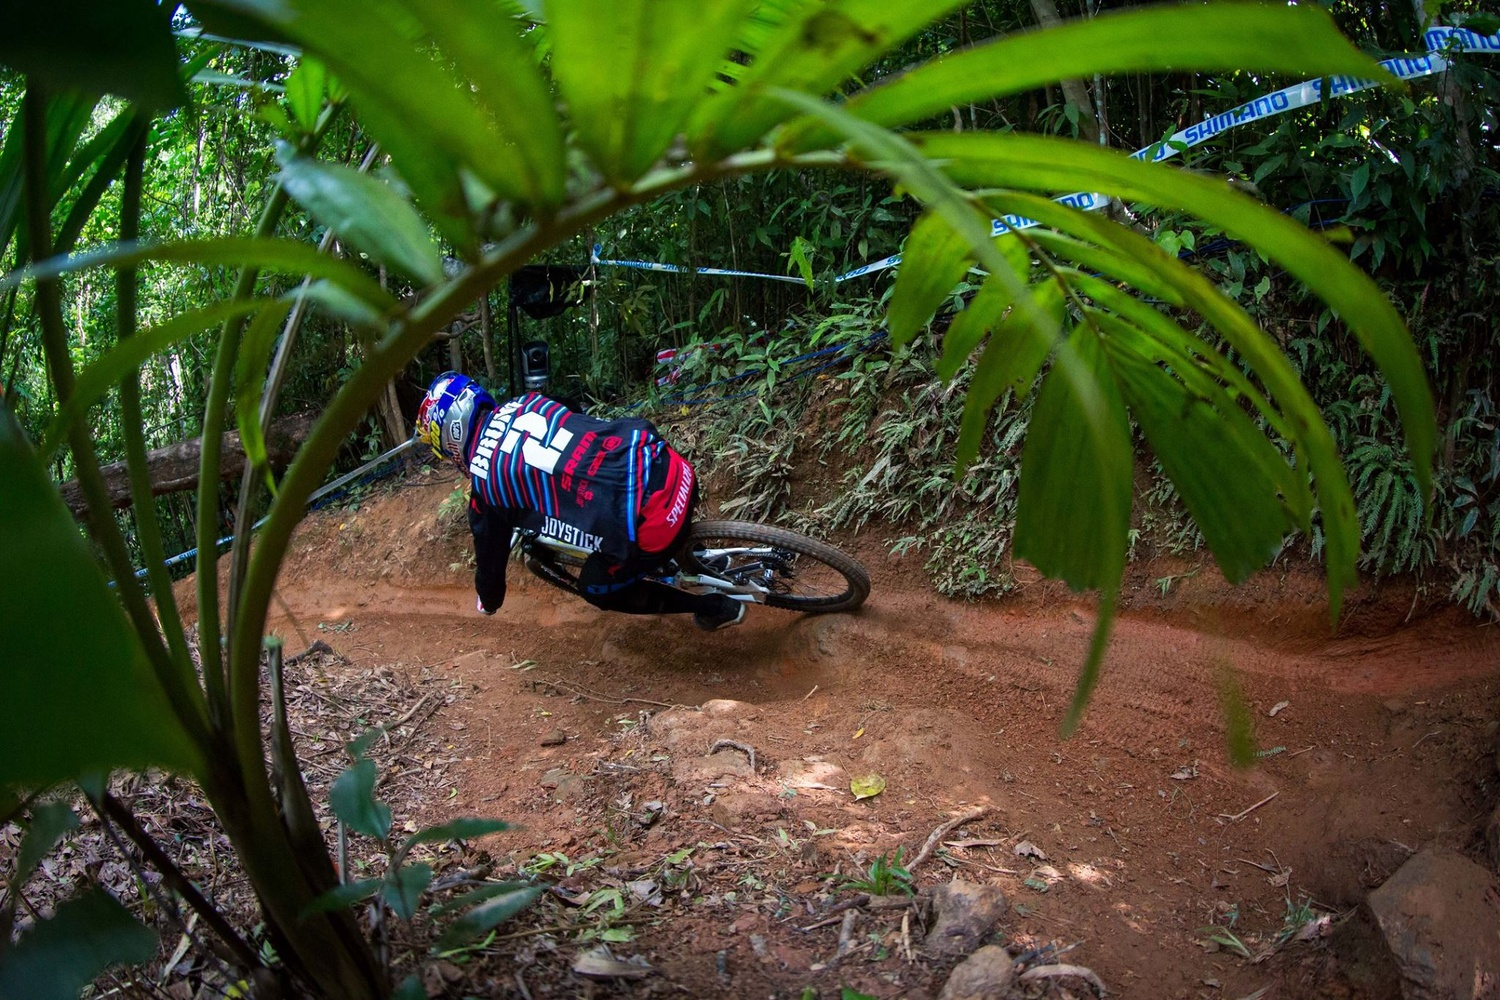 Loic Bruni in Cairns by Luca Cometti